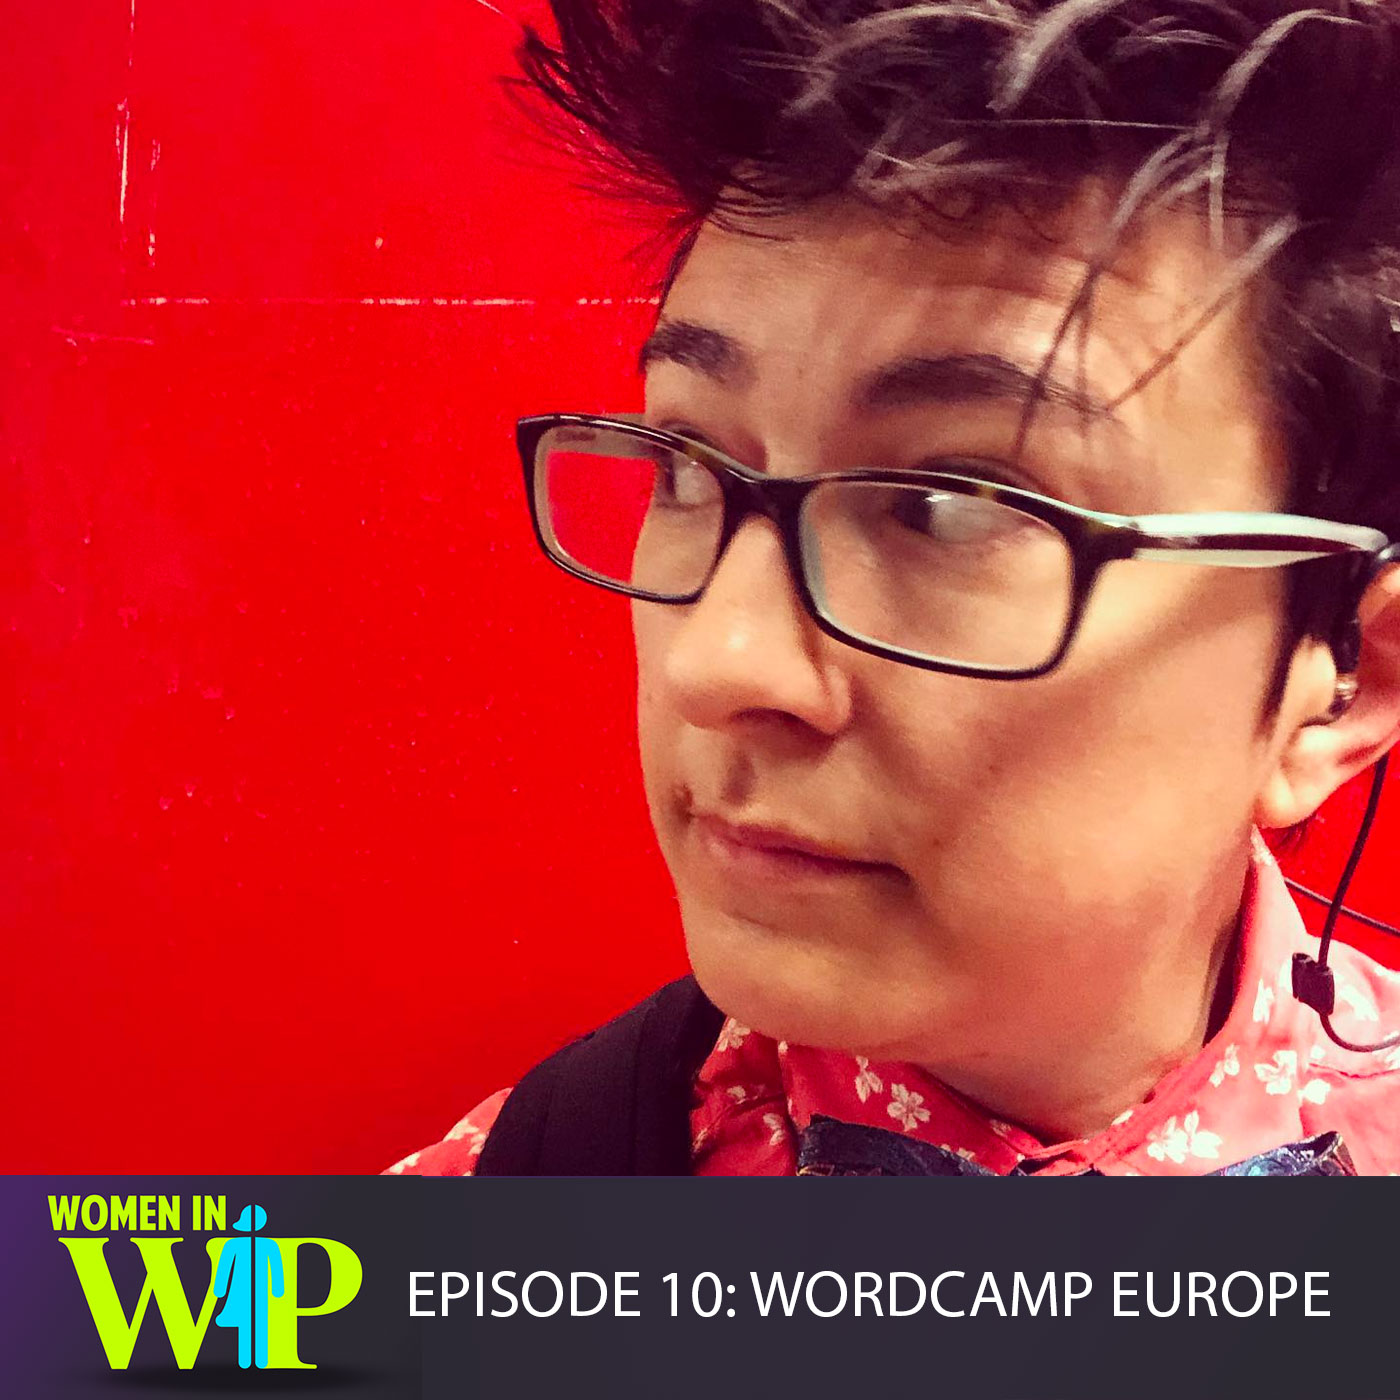 010: Tracy goes to WordCamp Europe